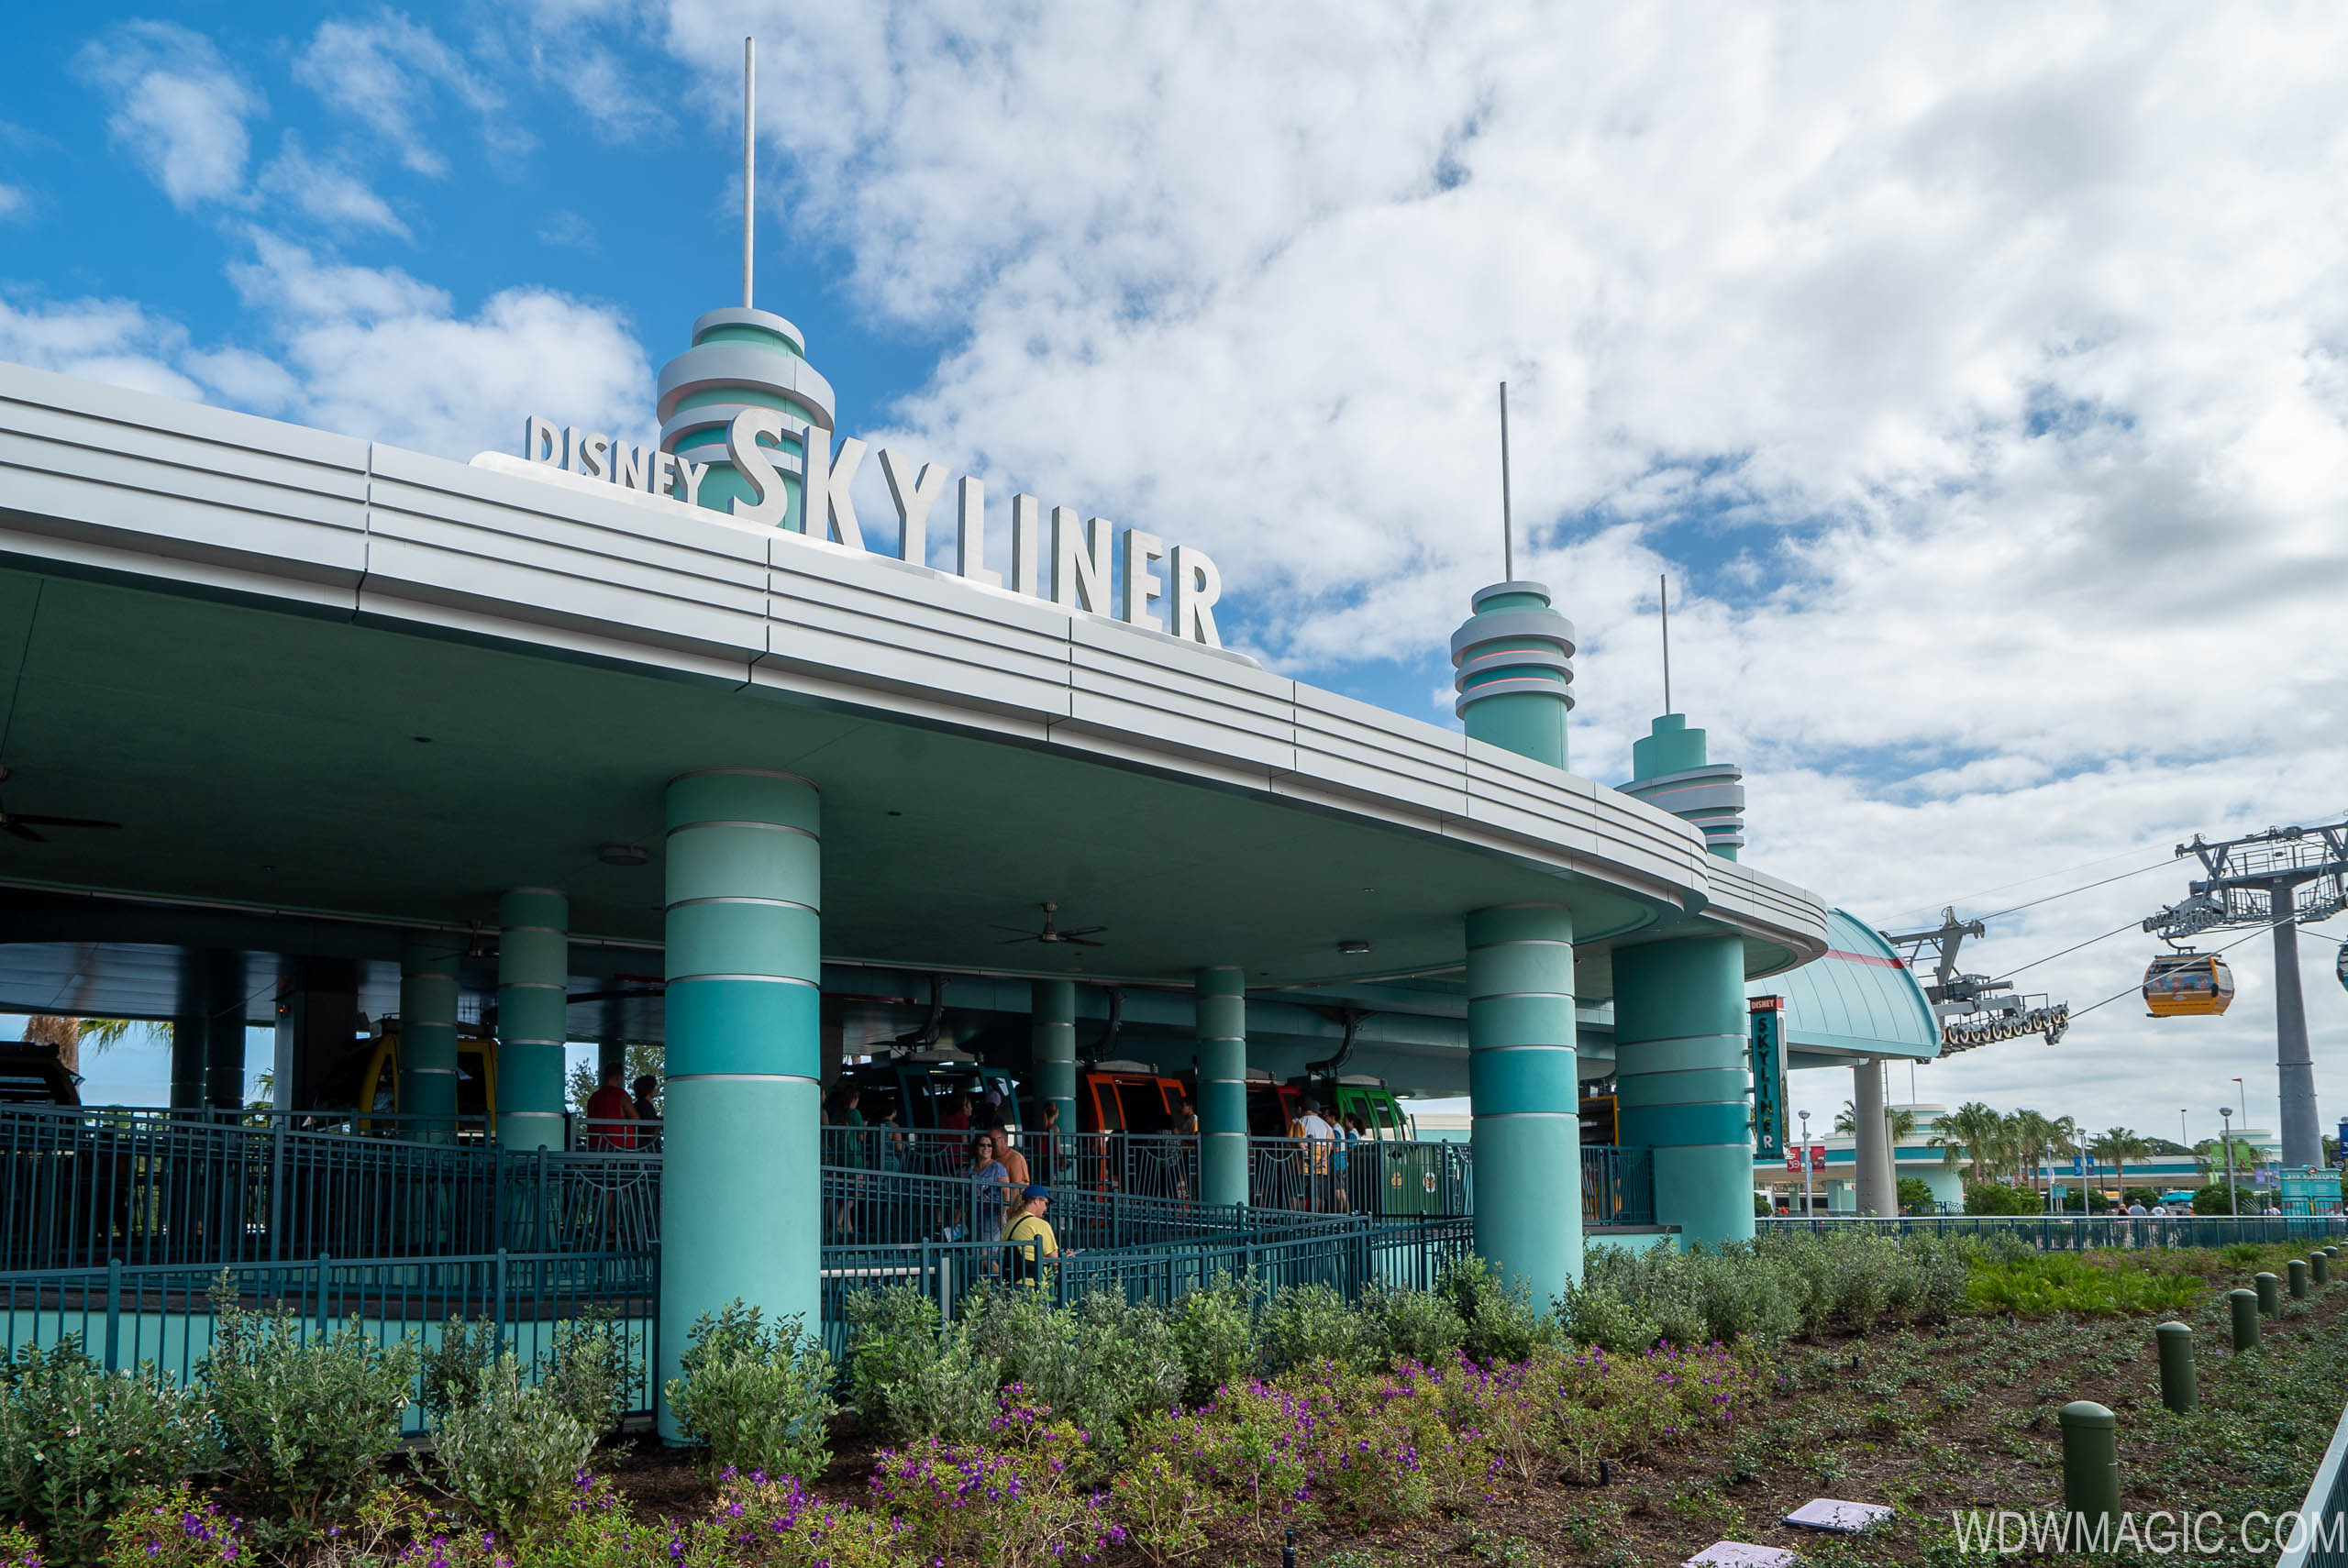 Disney Skyliner station at the Studios